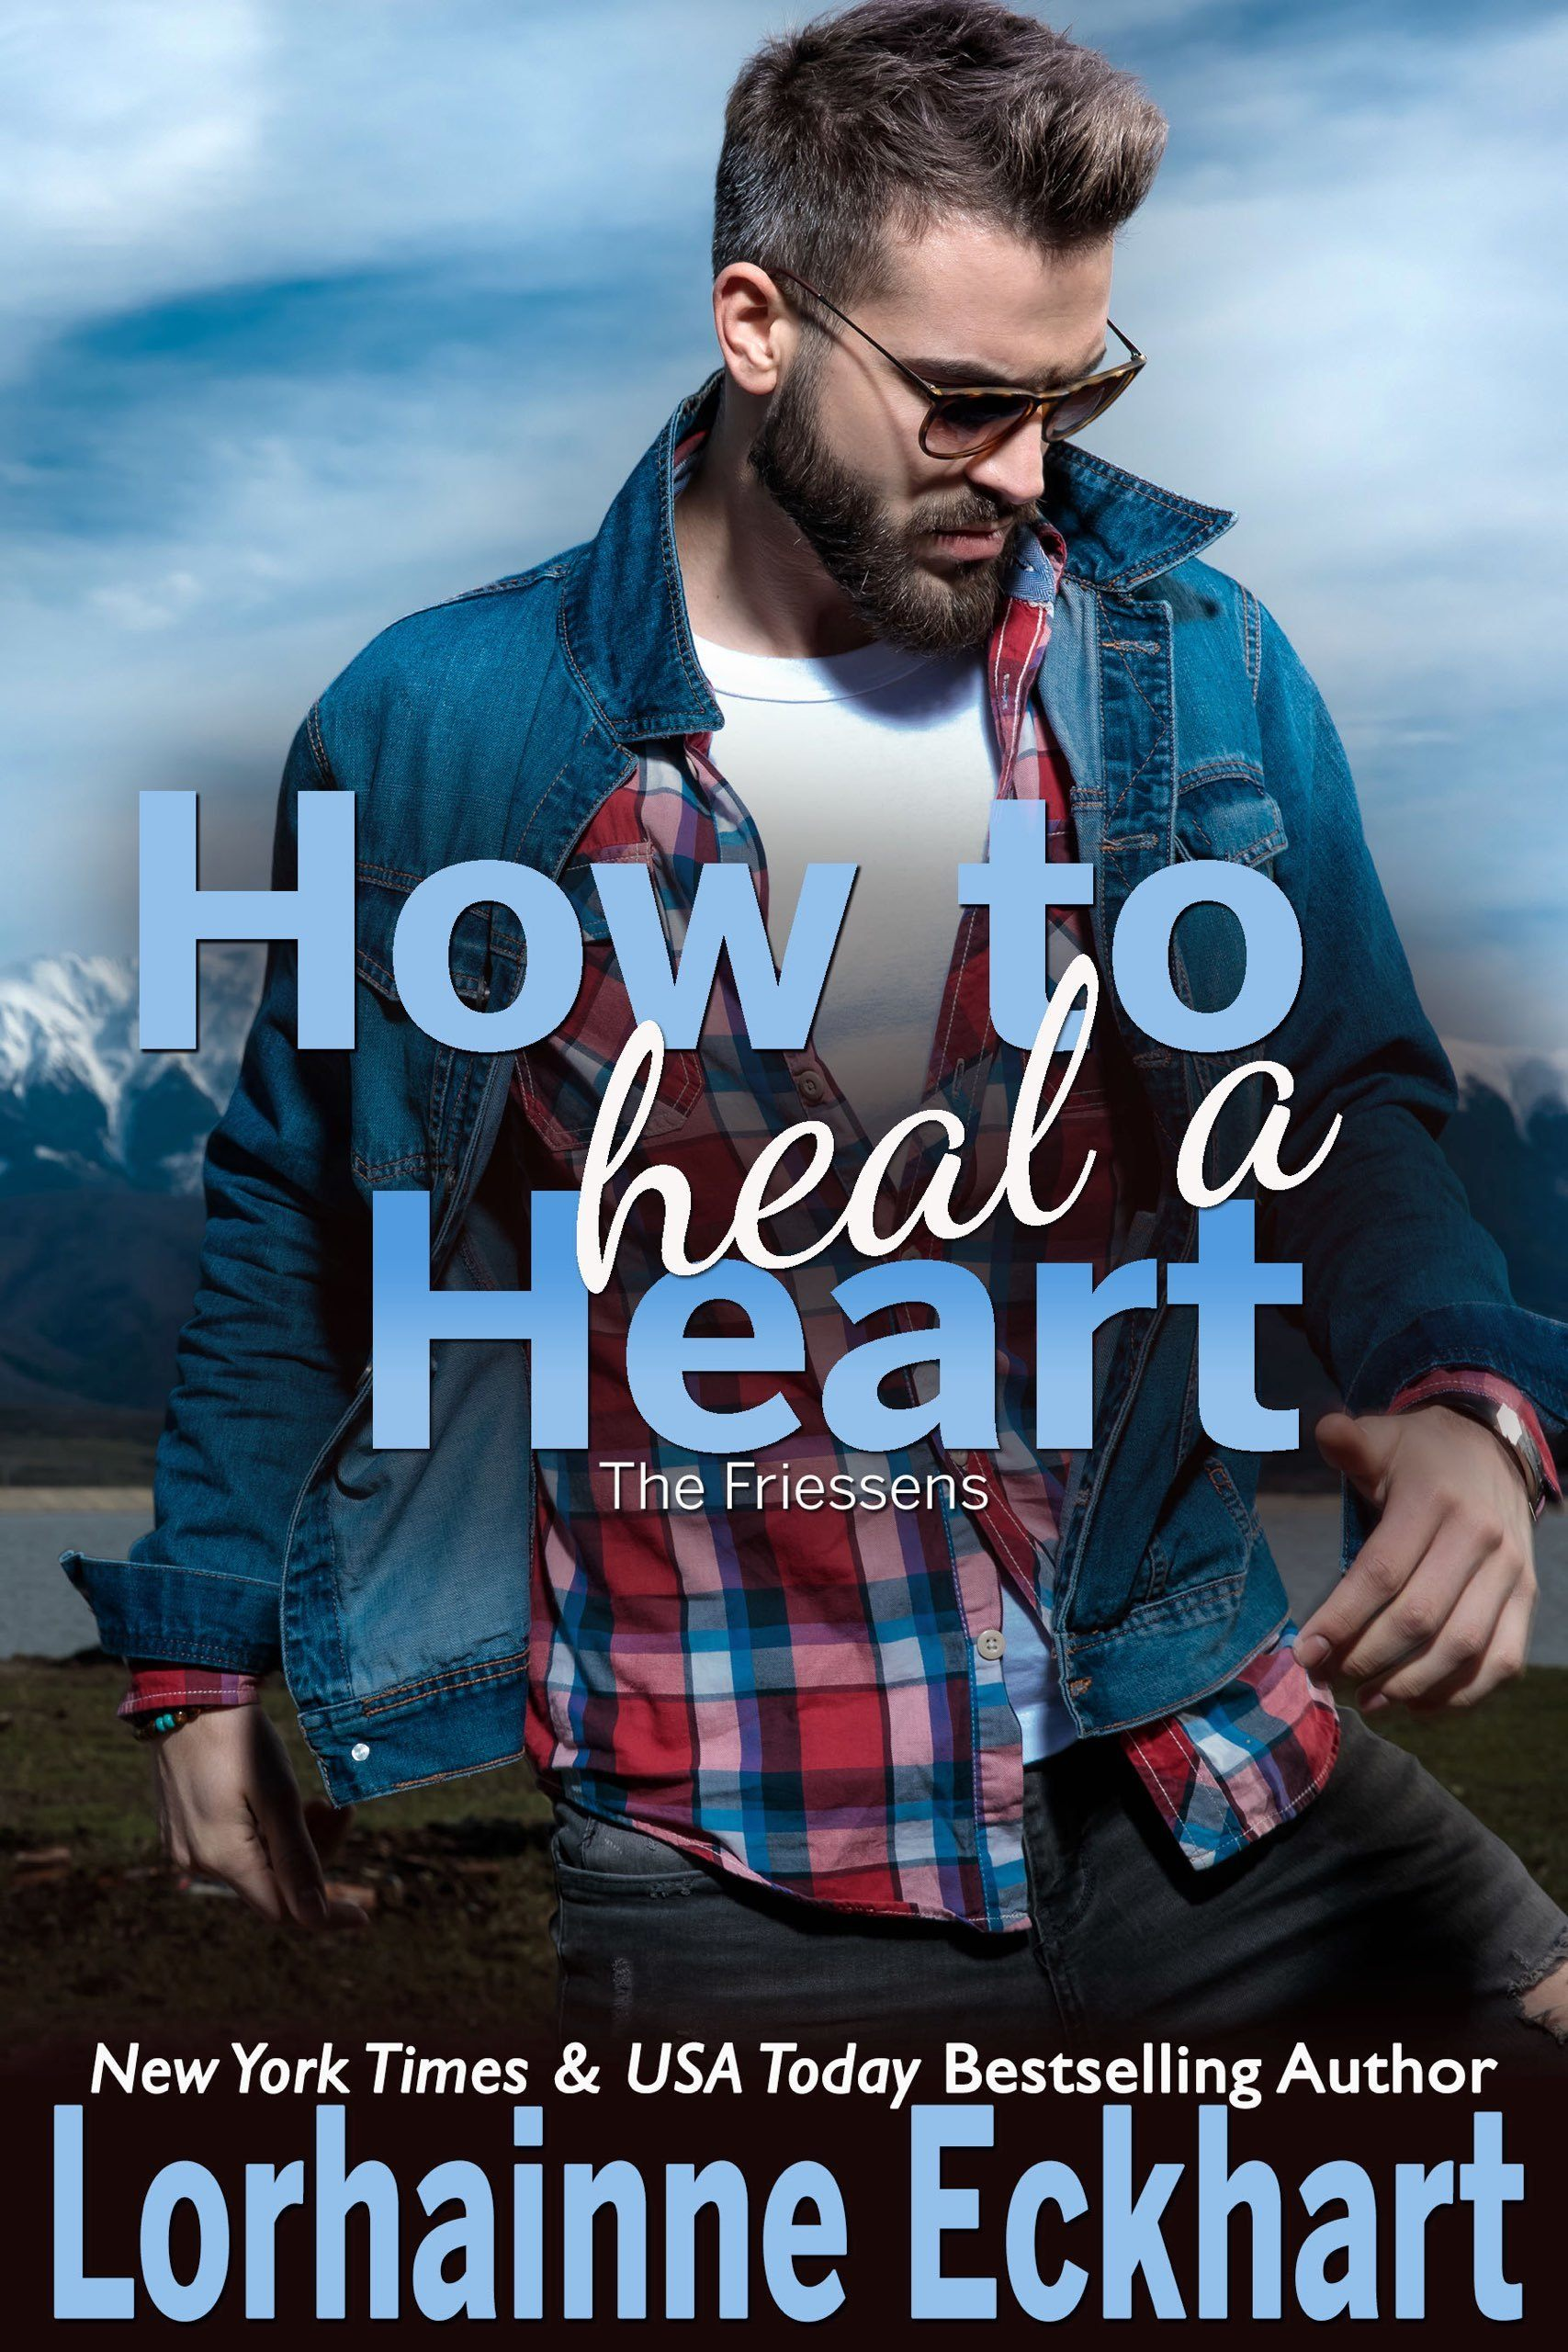 How to Heal a Heart